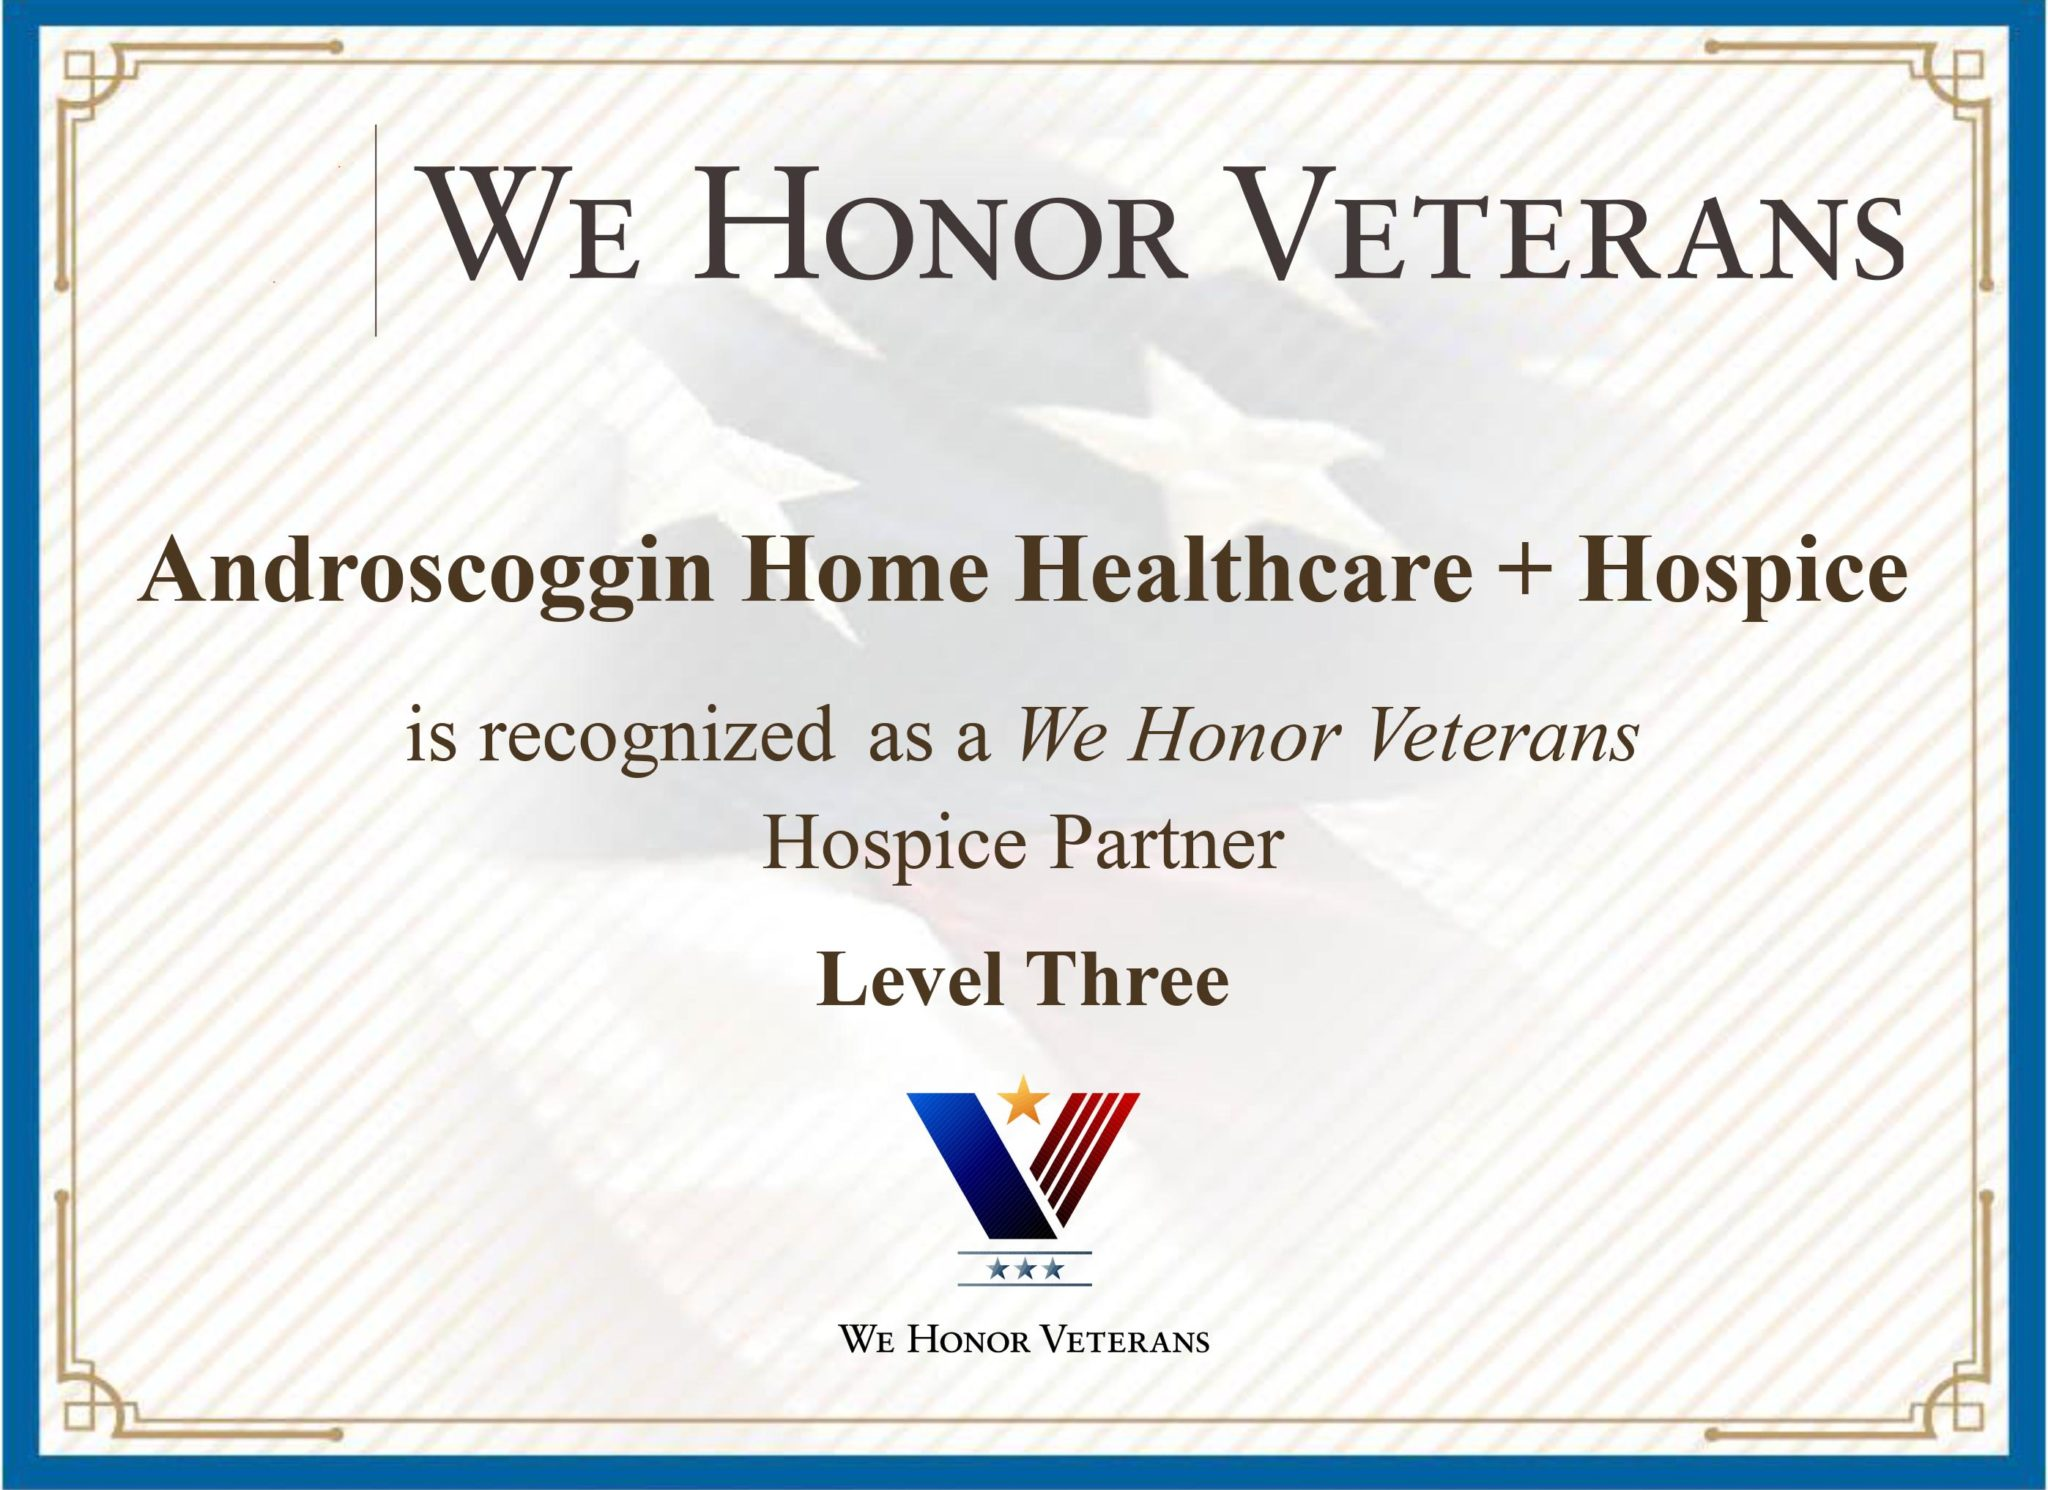 We Honor Vets 3-Star Certification - Androscoggin Home